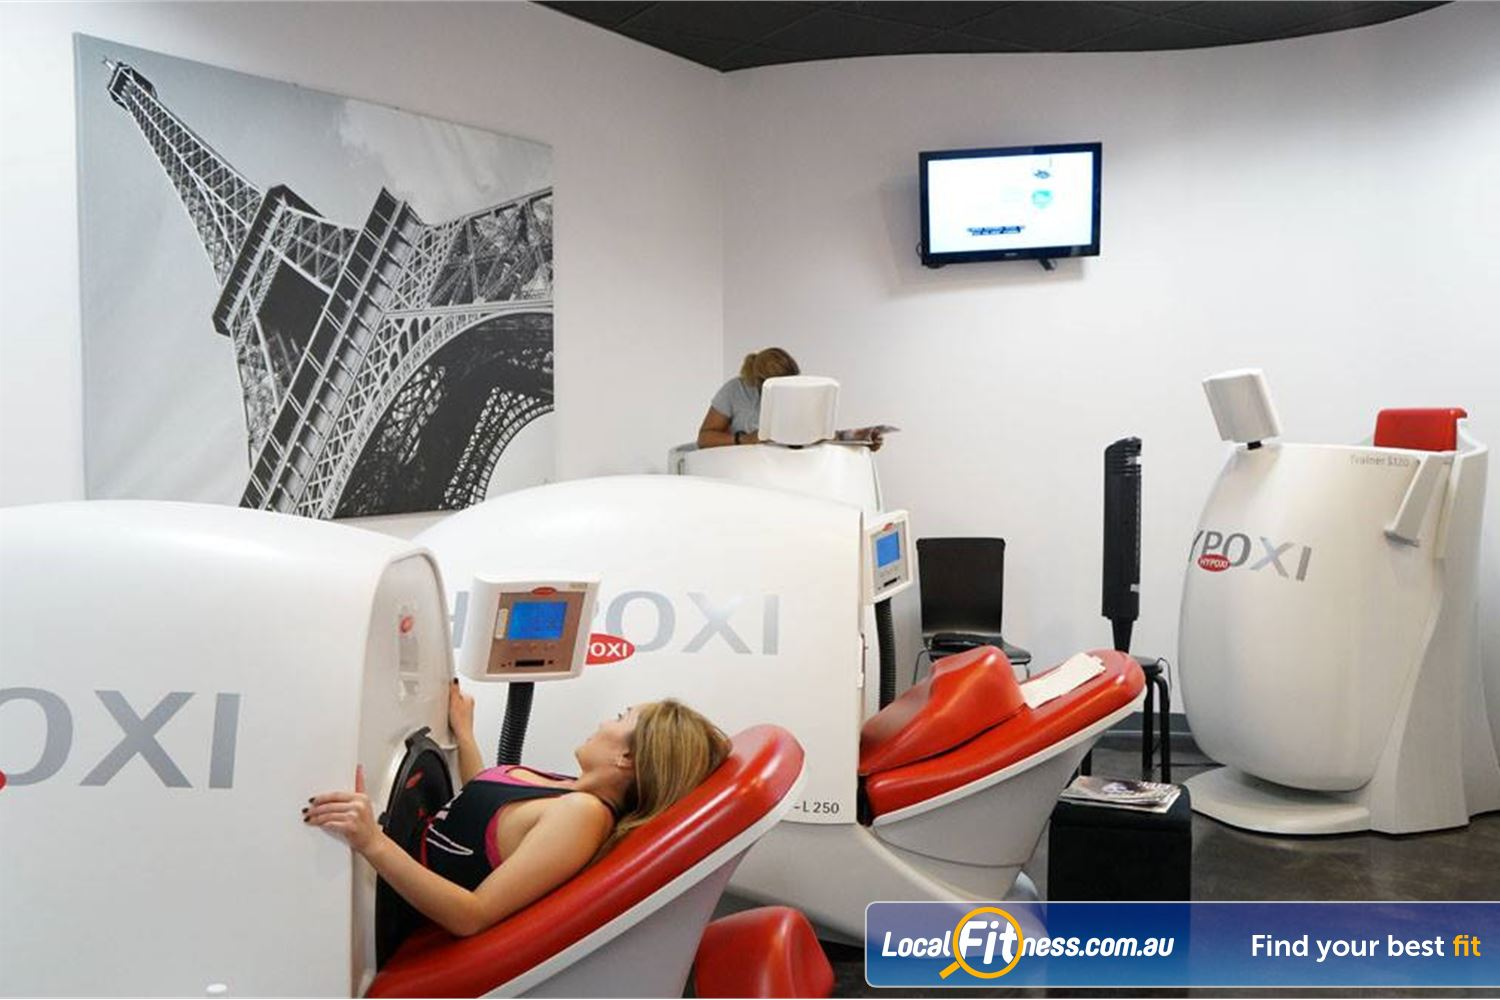 HYPOXI Weight Loss Newtown HYPOXI Newtown is great for men looking to lose those love handles.